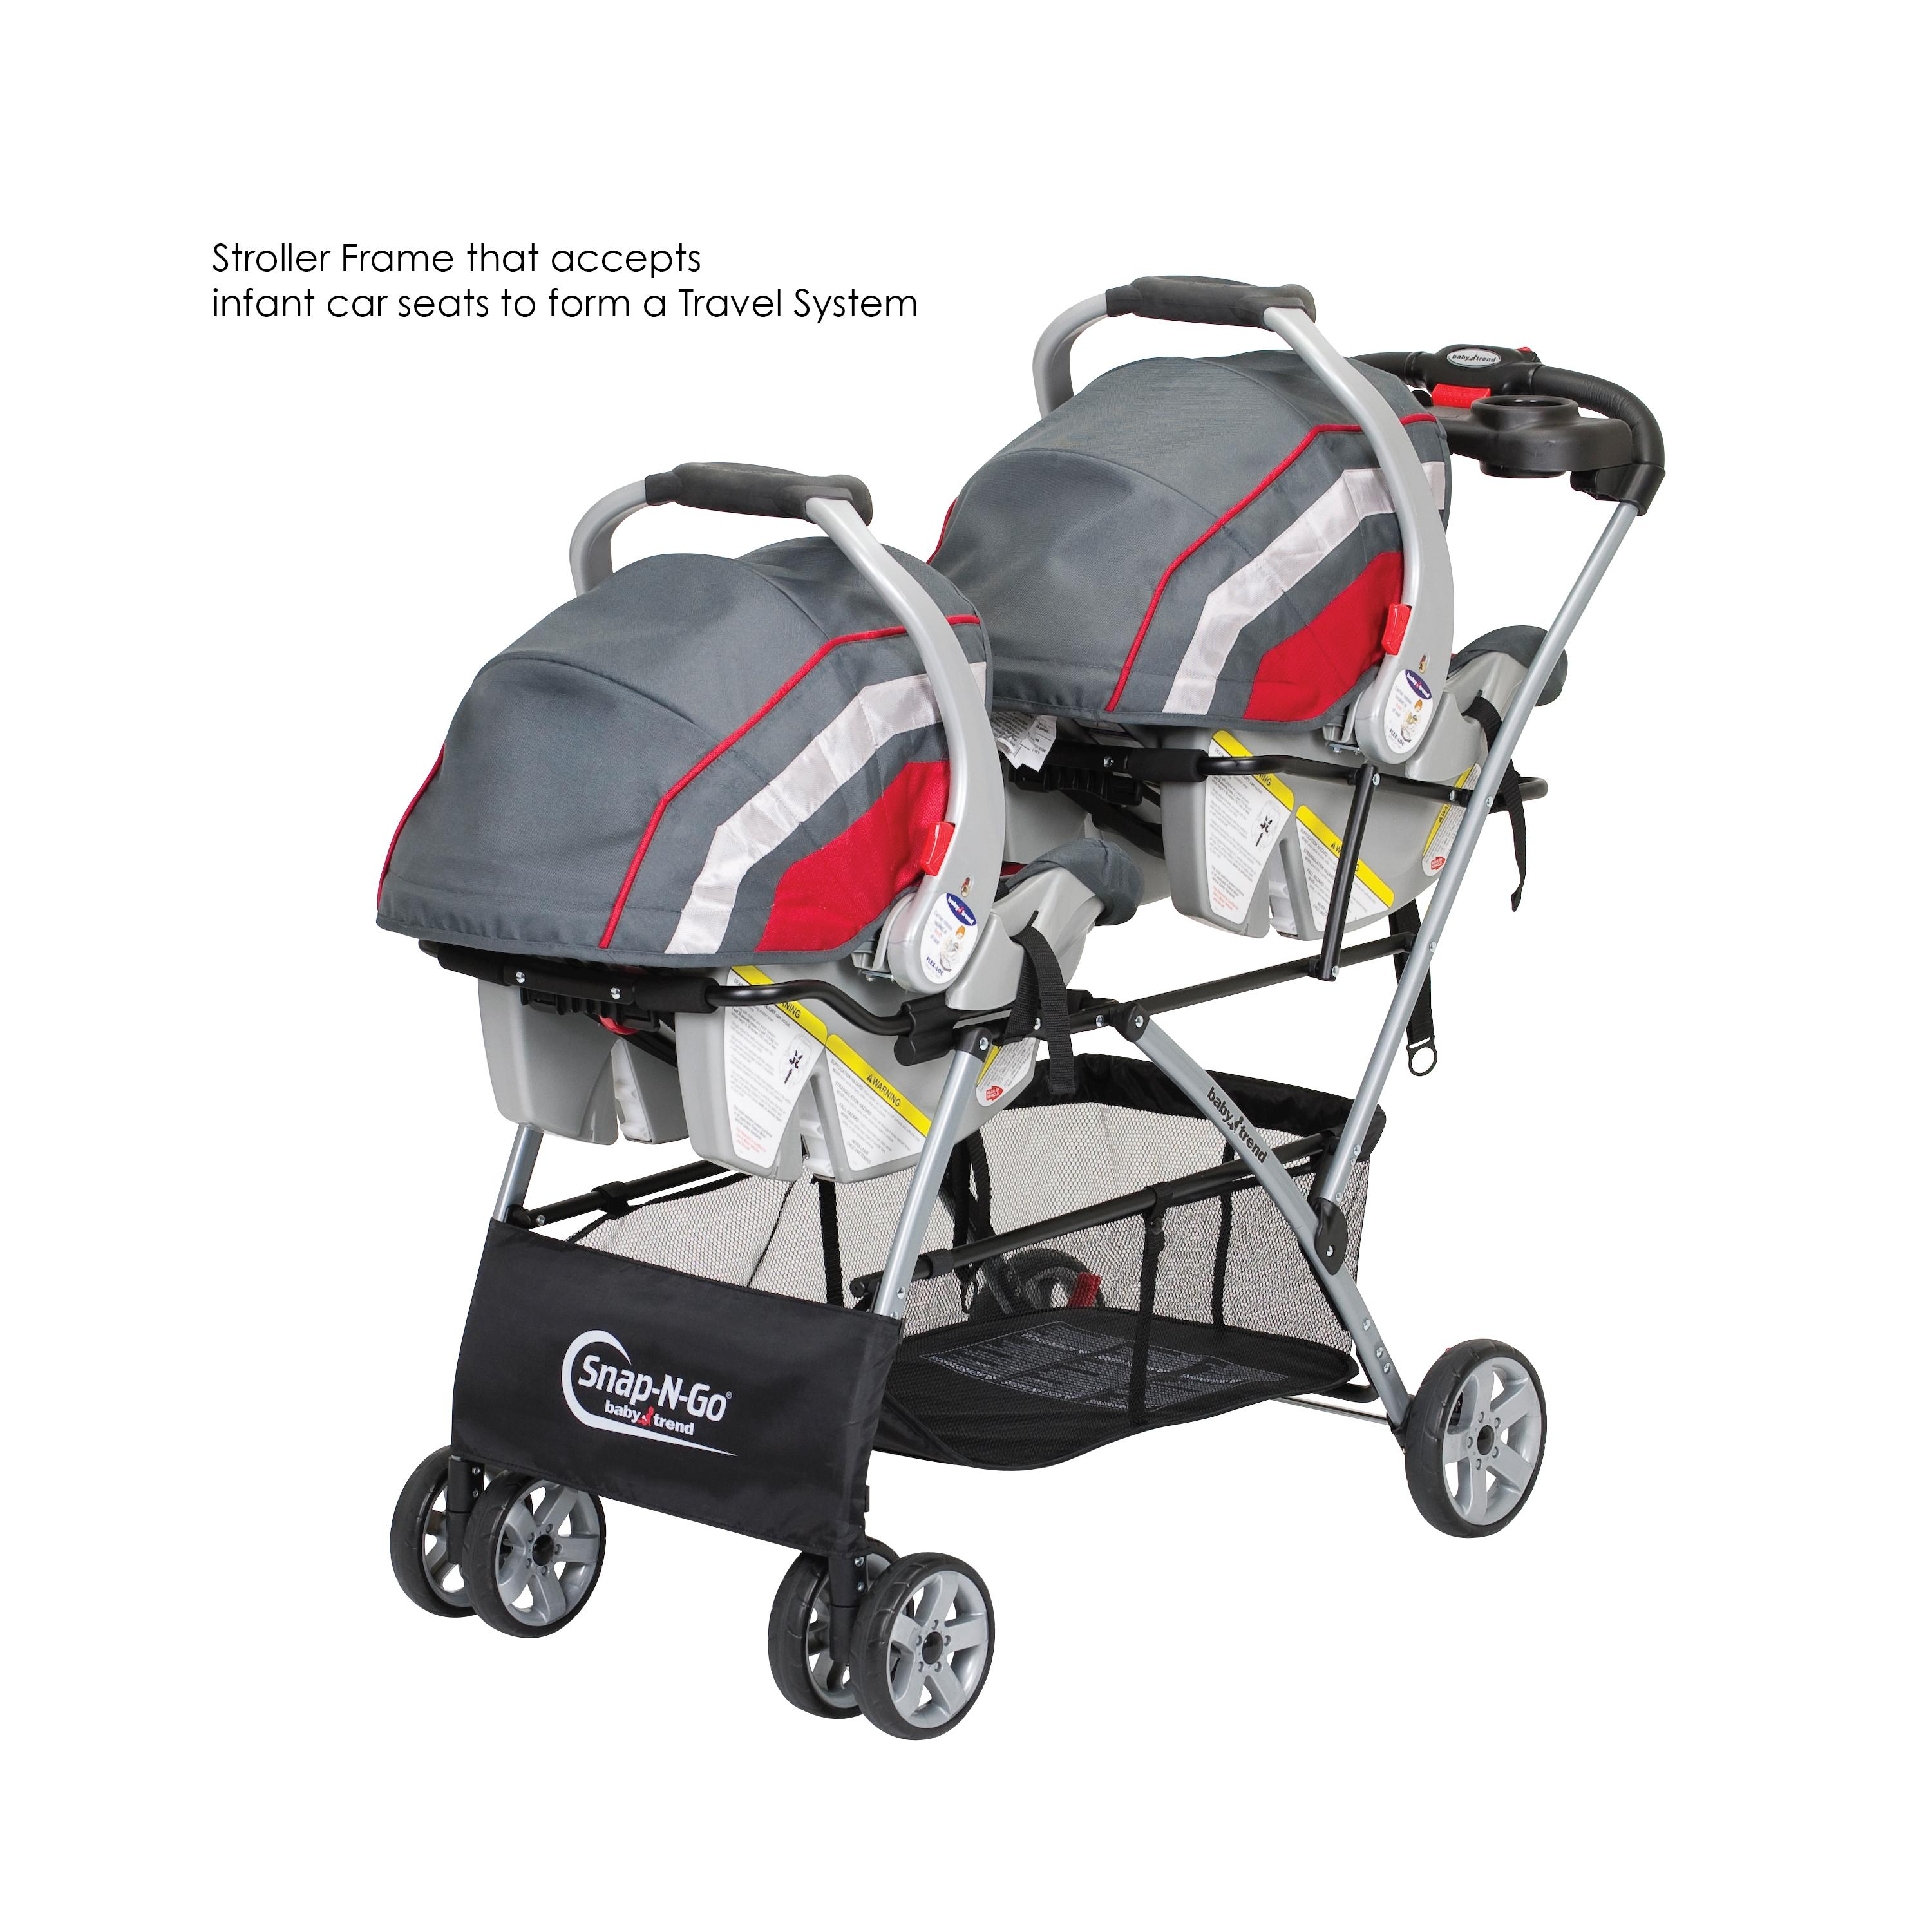 Baby Trend Universal Double Snap-N-Go Stroller Frame: Amazon.ca: Baby